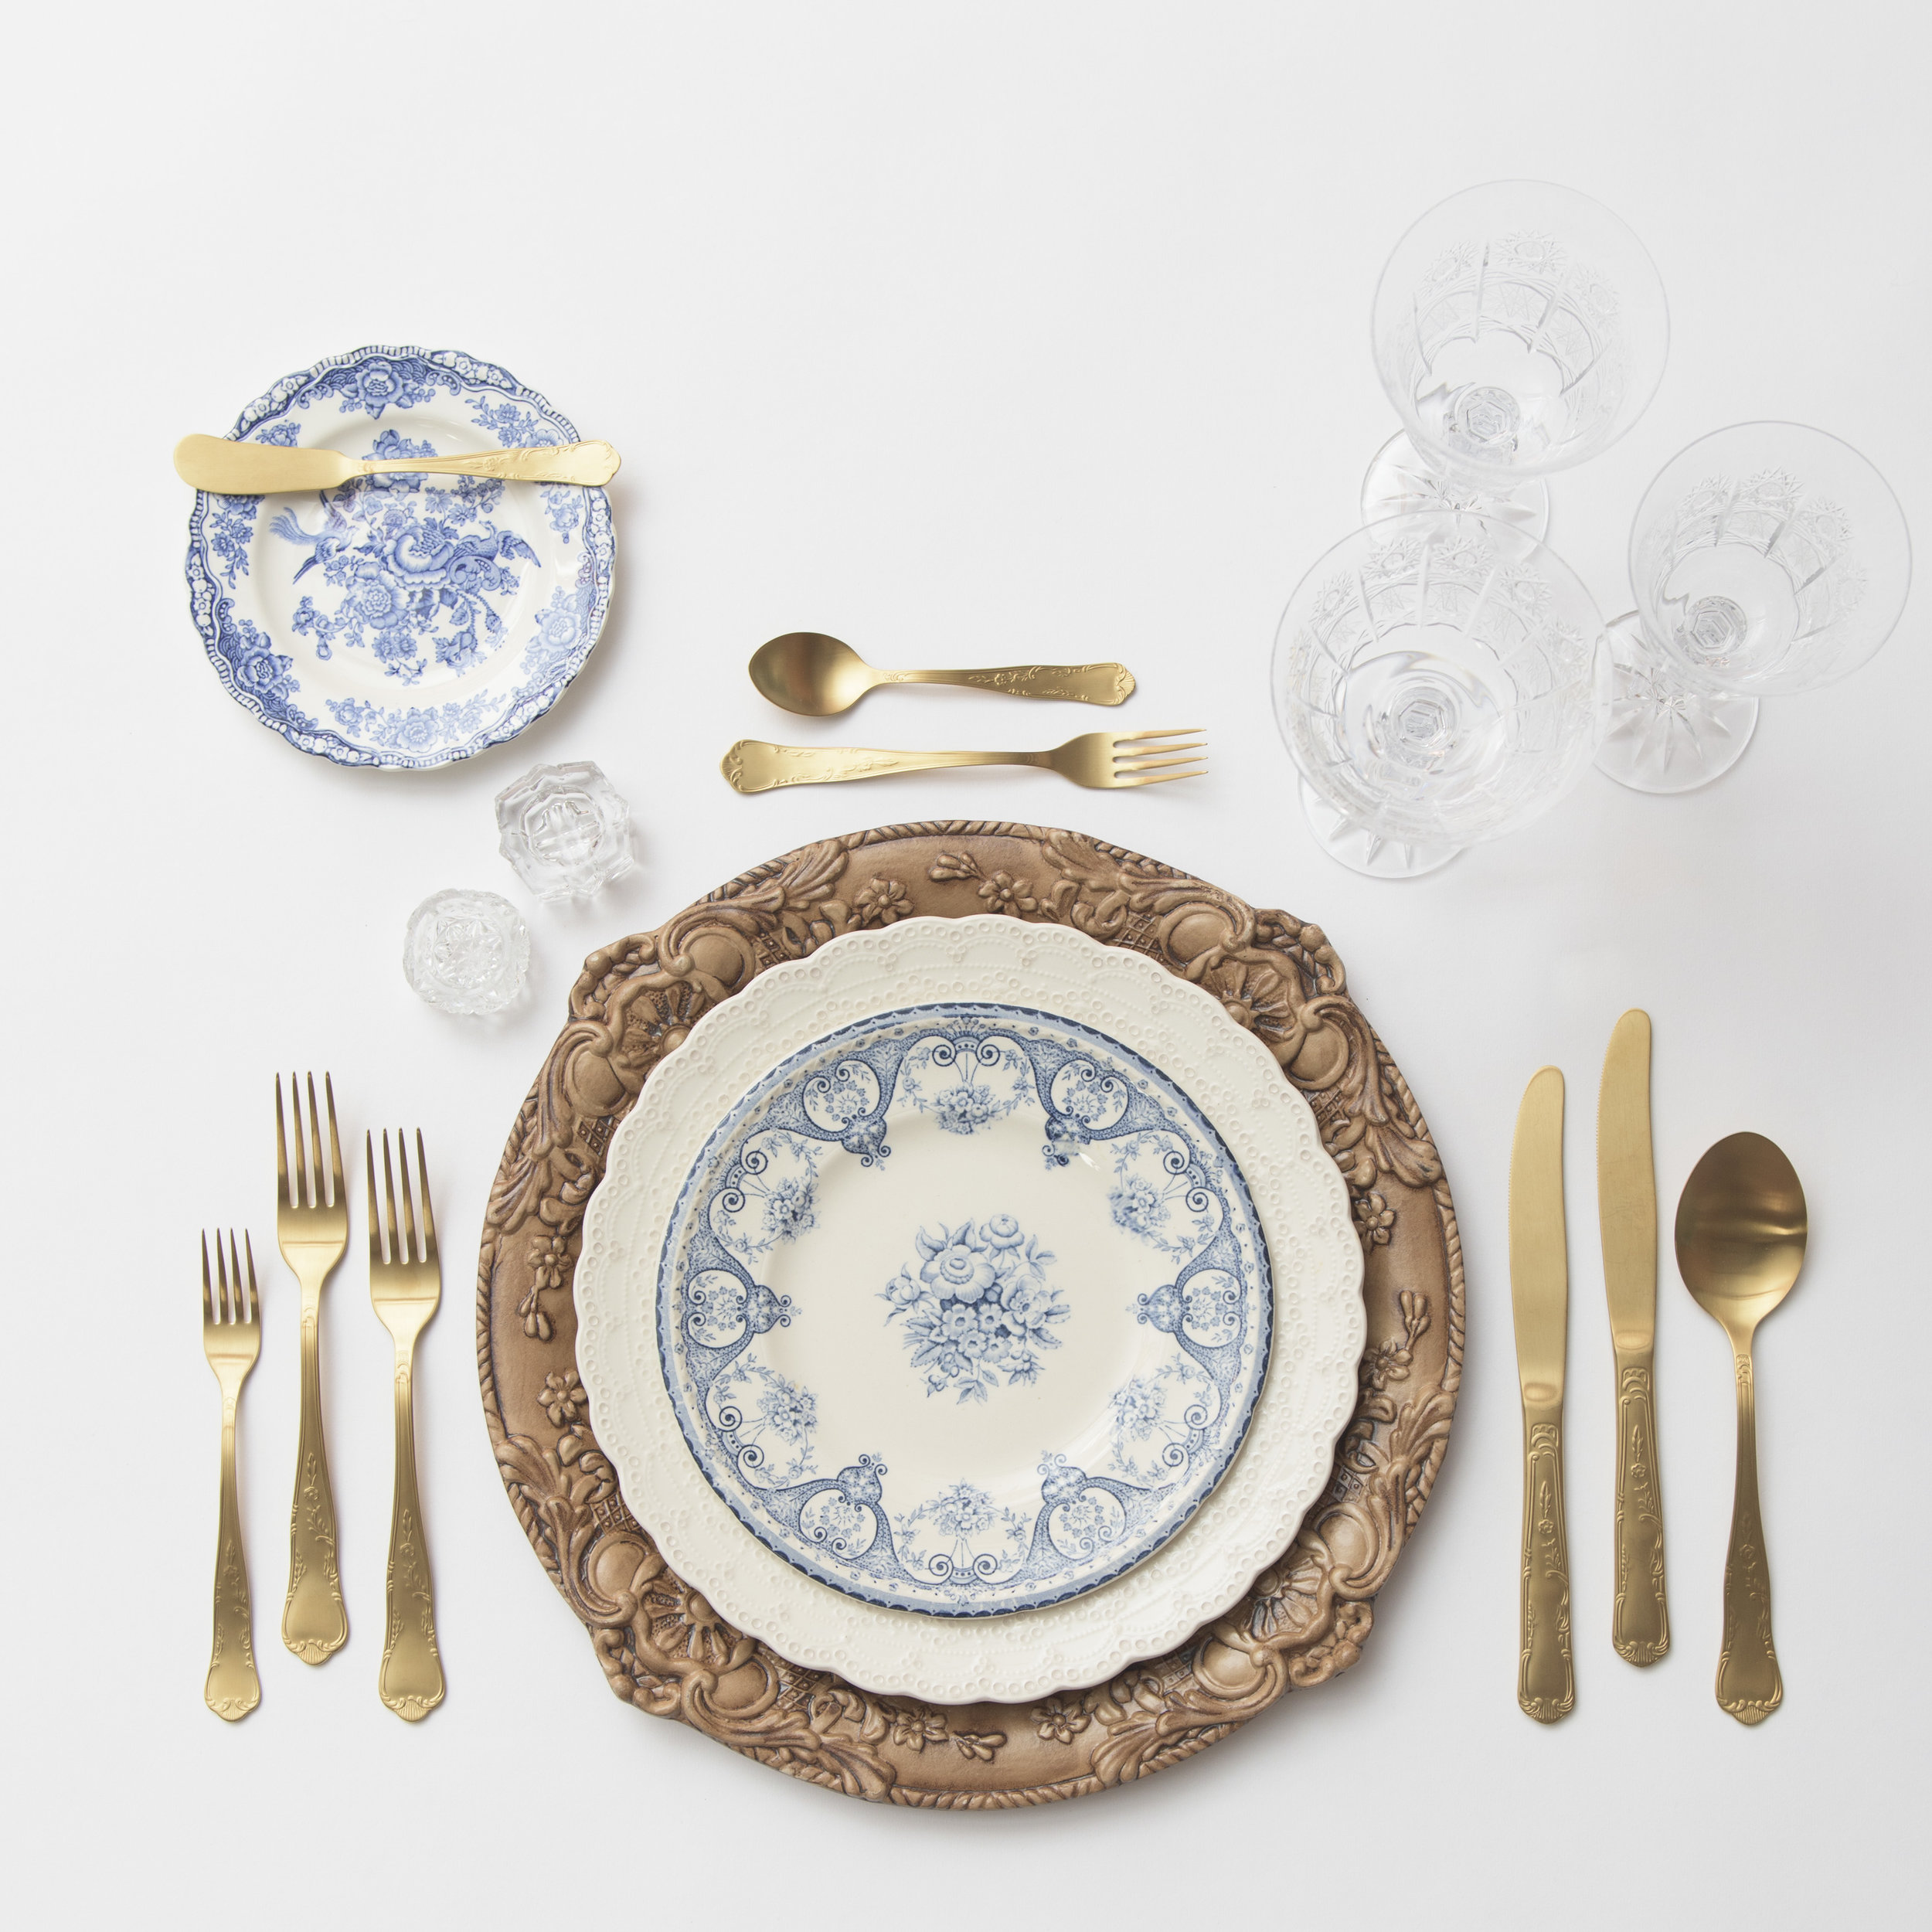 RENT: Verona Chargers in Walnut + White Collection Vintage China + Blue Garden Collection Vintage China + Chateau Flatware in Matte Gold + Czech Crystal Stemware + Antique Crystal Salt Cellars  SHOP: Verona Chargers in Walnut